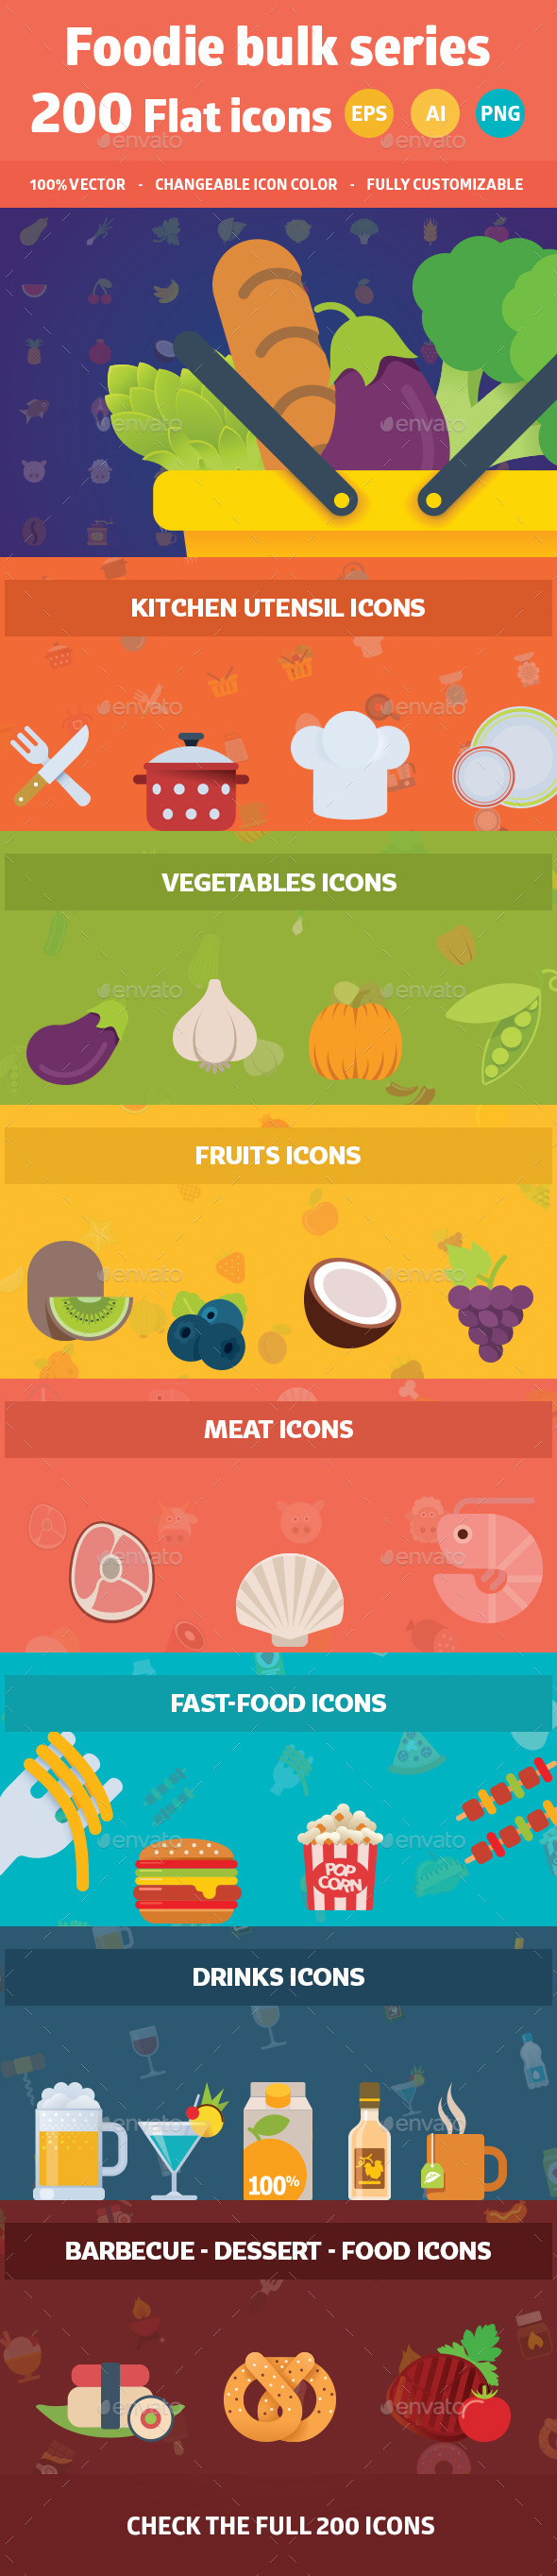 200 Food Flat Colorful Icons - Food Objects